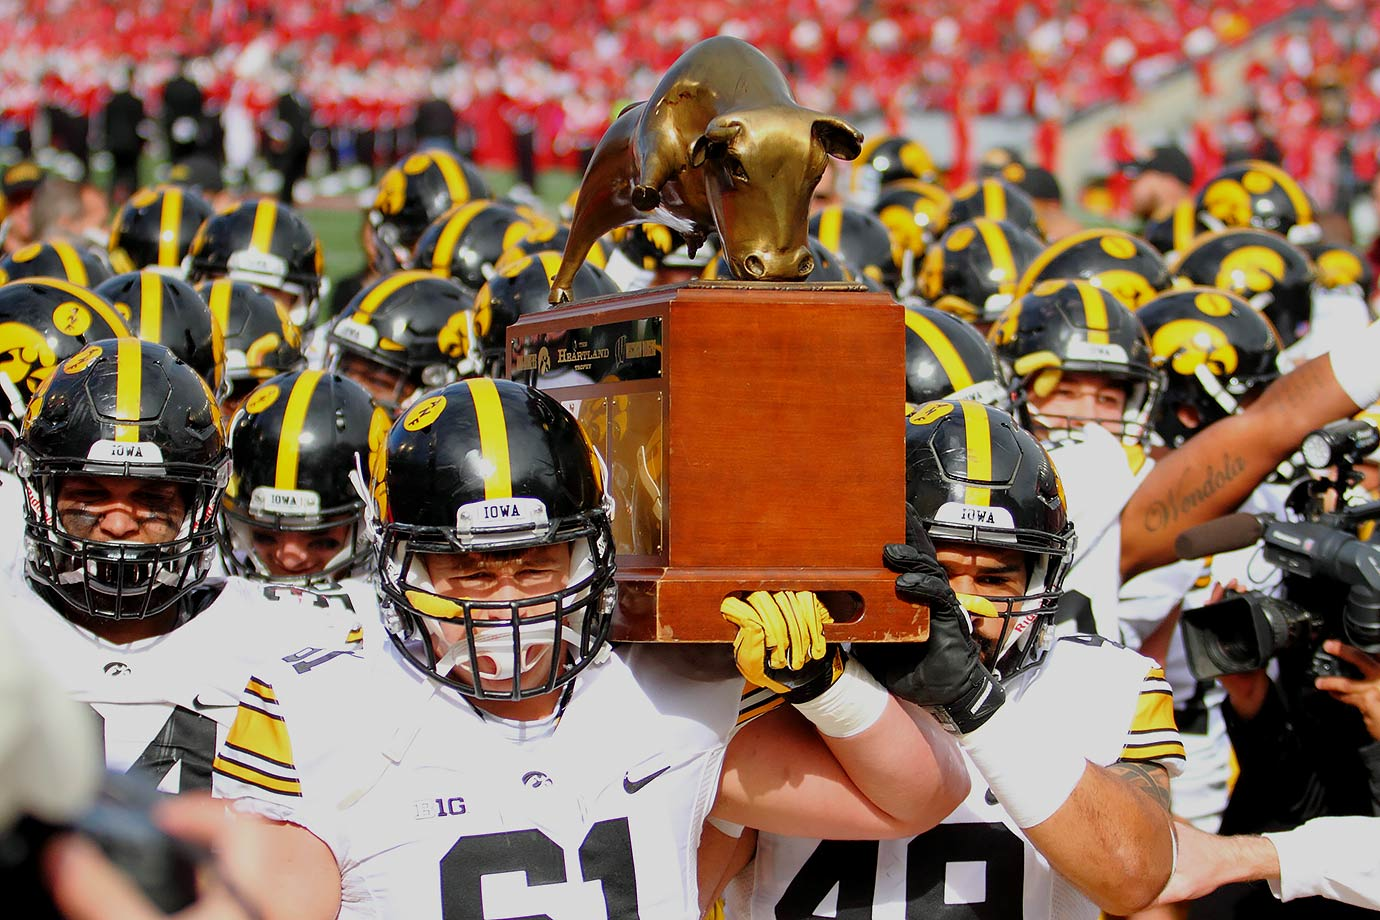 Iowa vs. Wisconsin